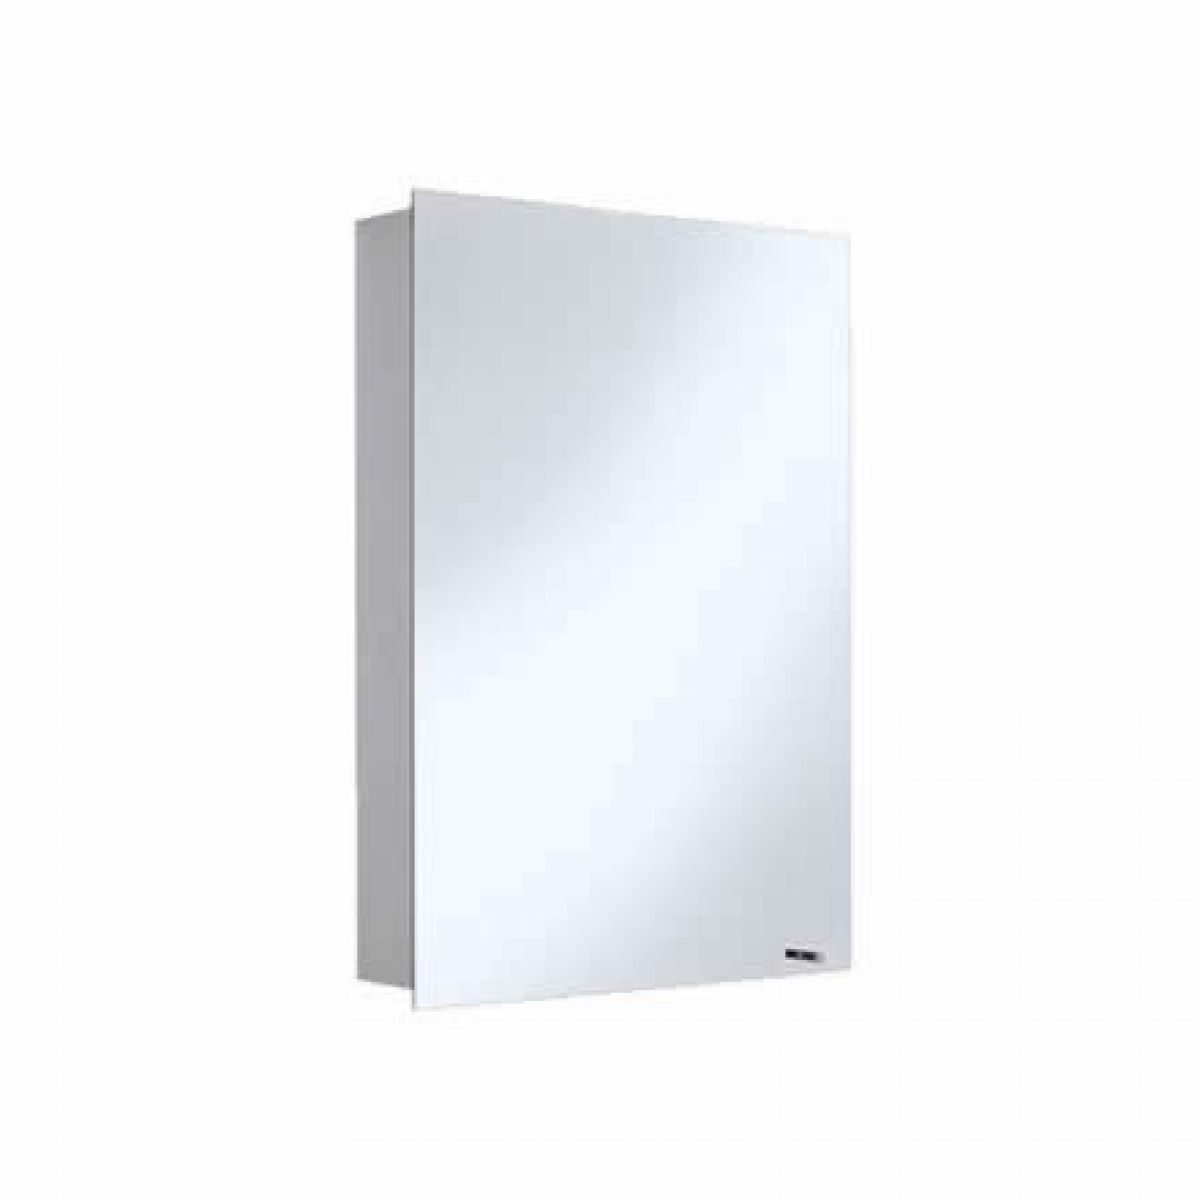 Keuco royal smart 500mm bathroom cabinet right hand uk bathrooms - Bathroom cabinets keuco ...